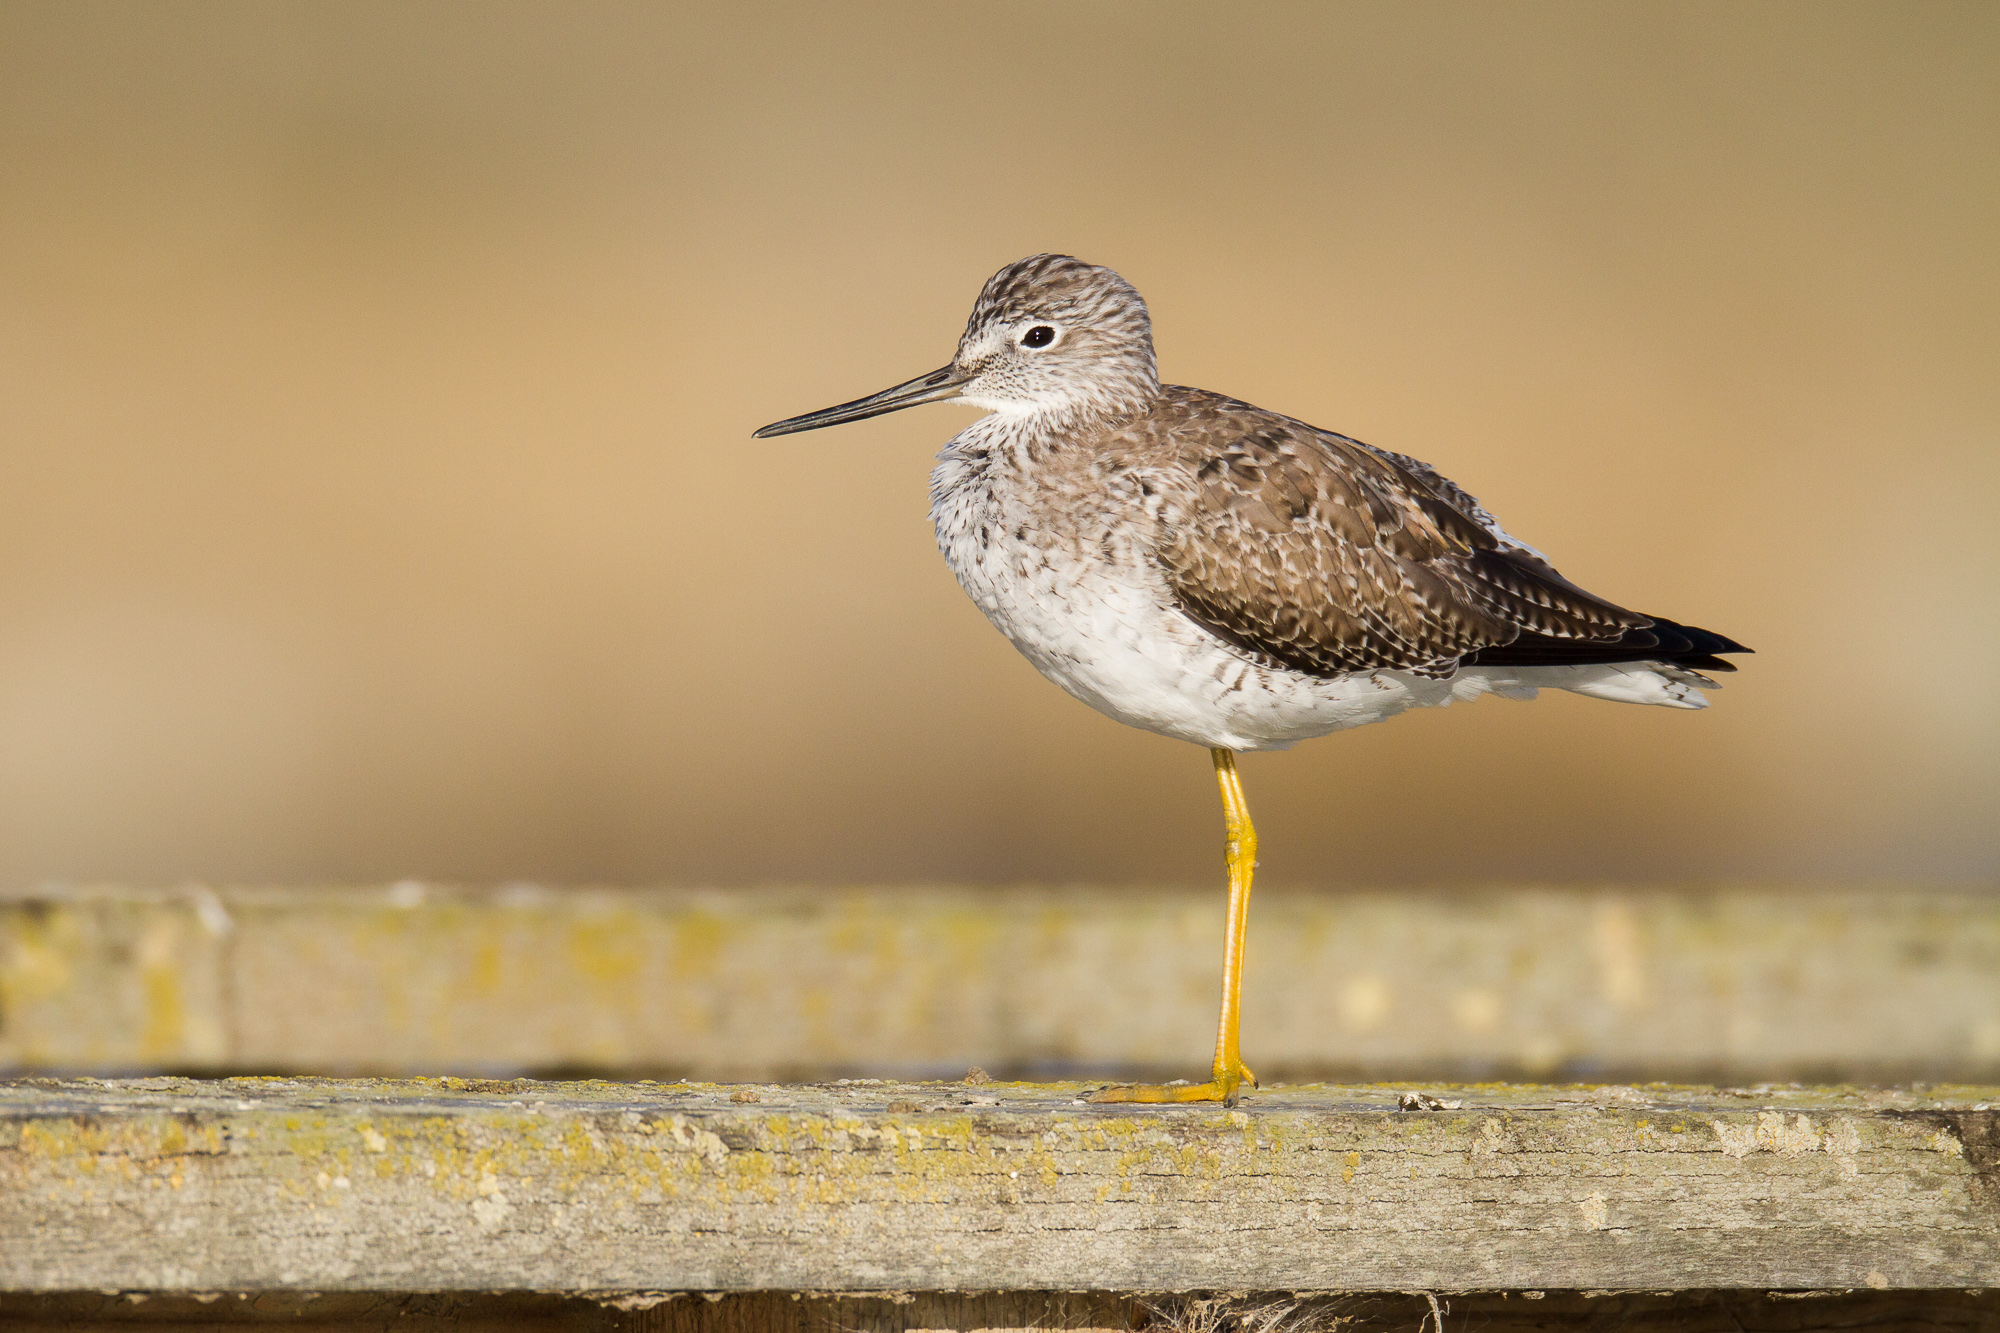 A greater yellowlegs stands on the railing of a dock.  The background color comes from a distant shoreline behind the dock.